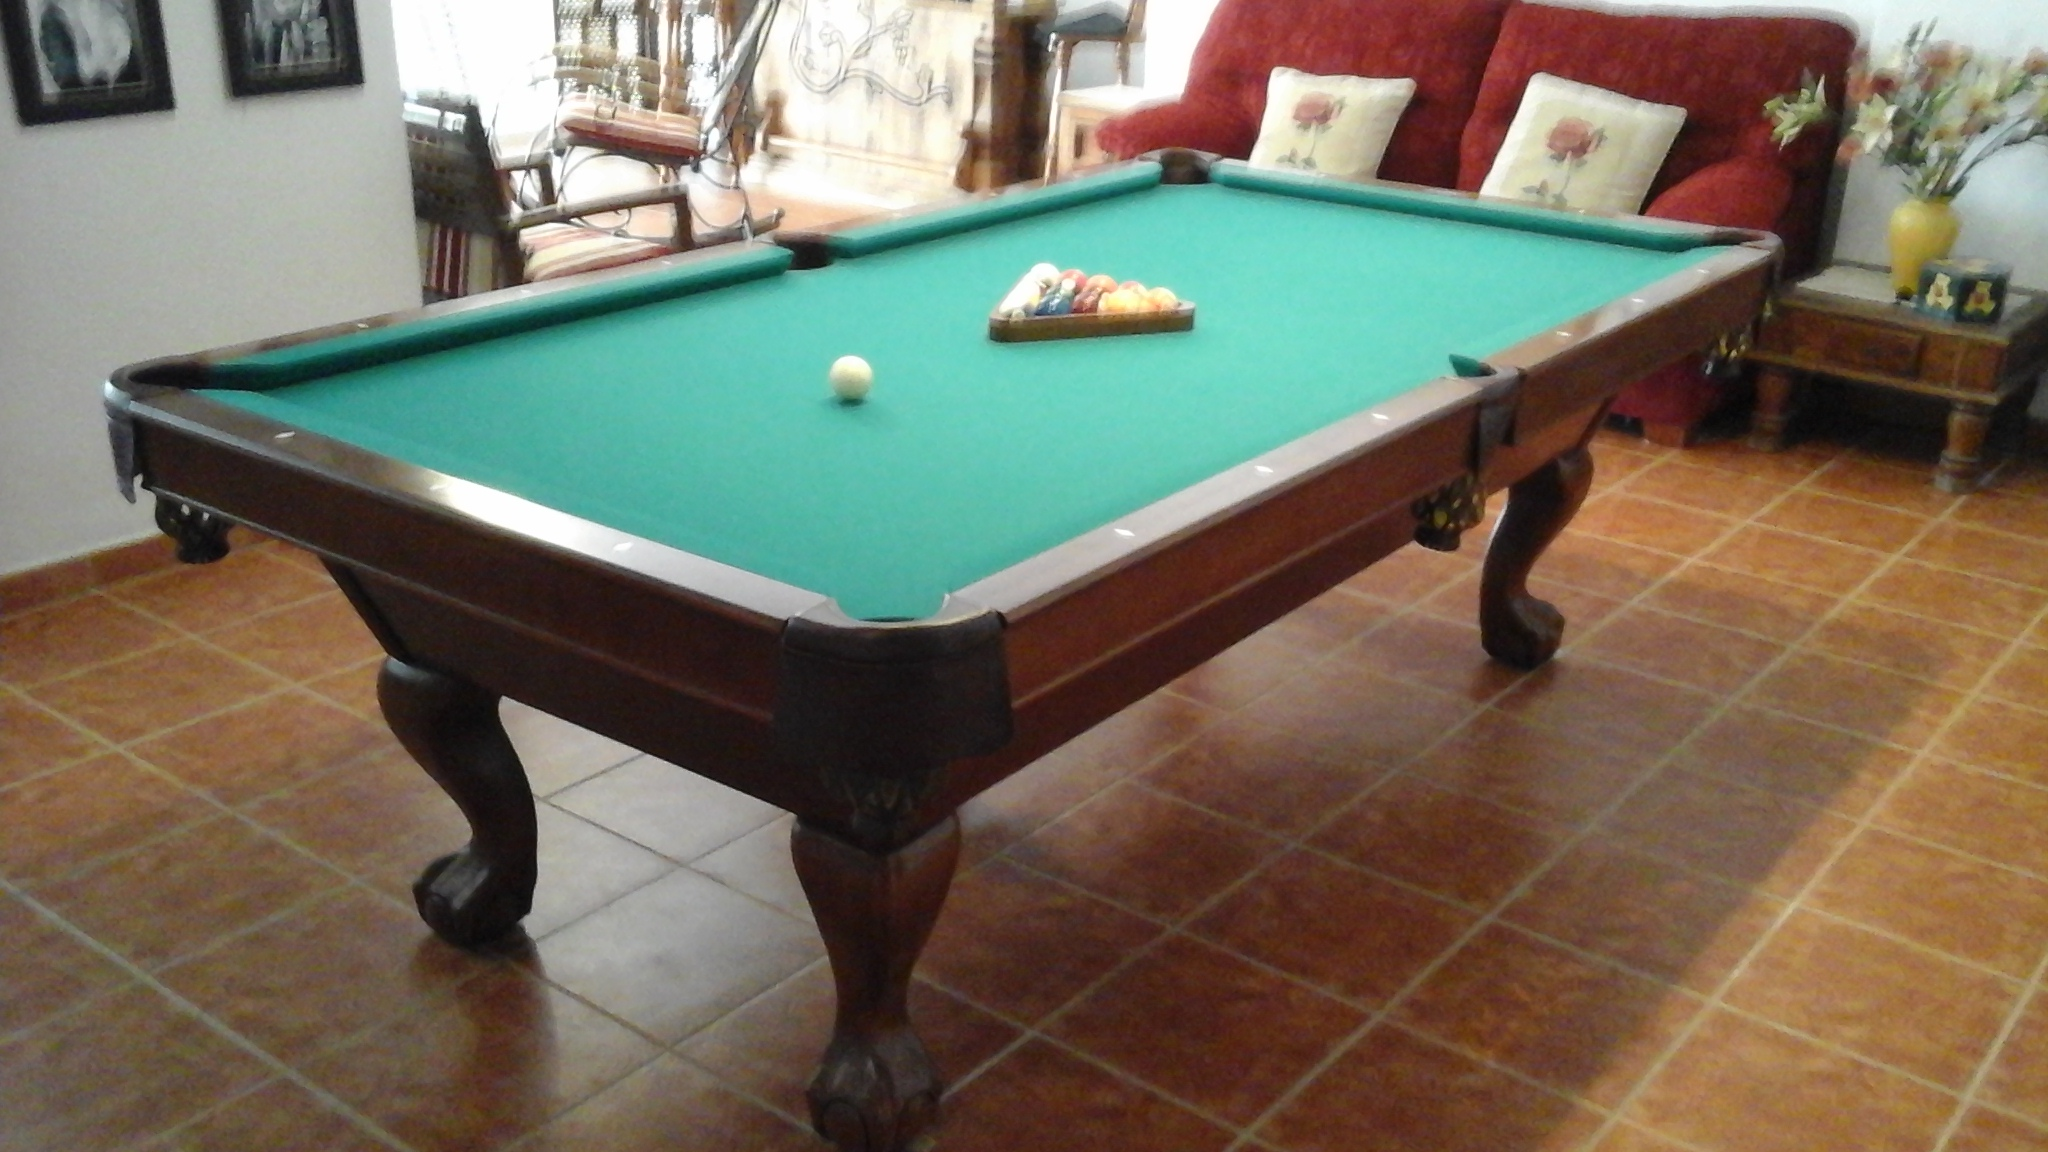 For Sale Brunswick Contender Pool Table Buy And Sell Items In - Brunswick contender series pool table